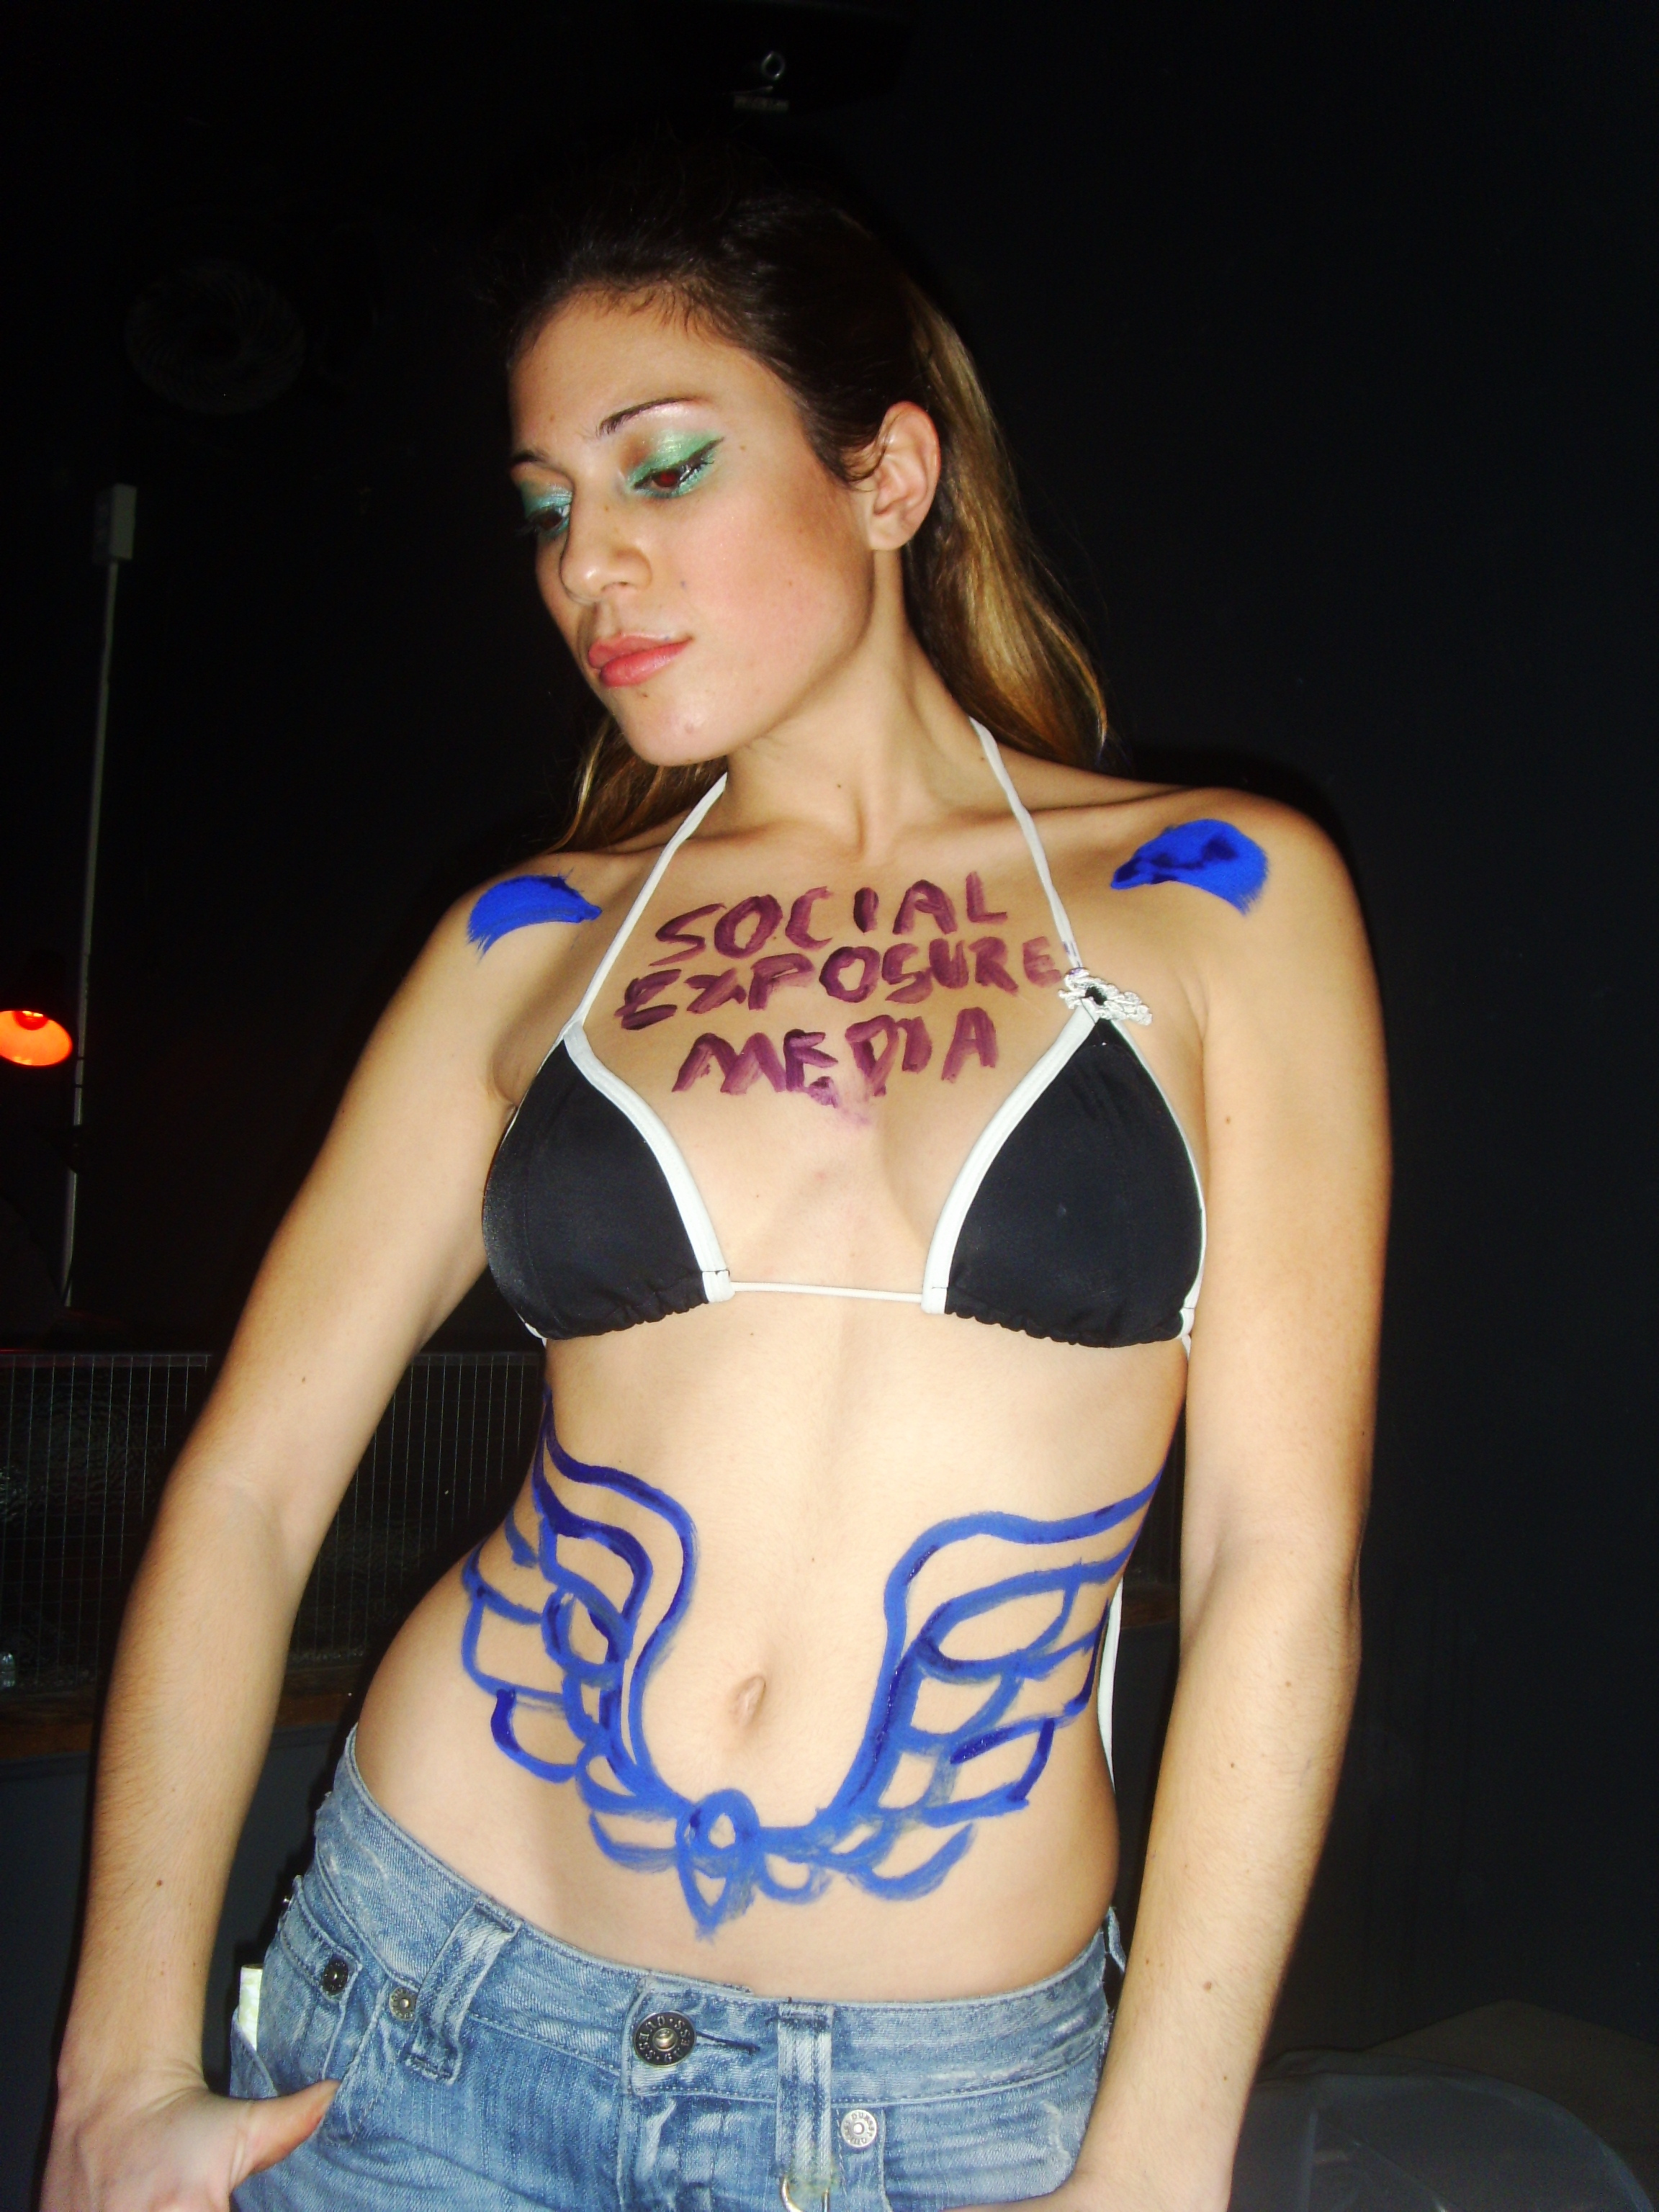 amateur body painting